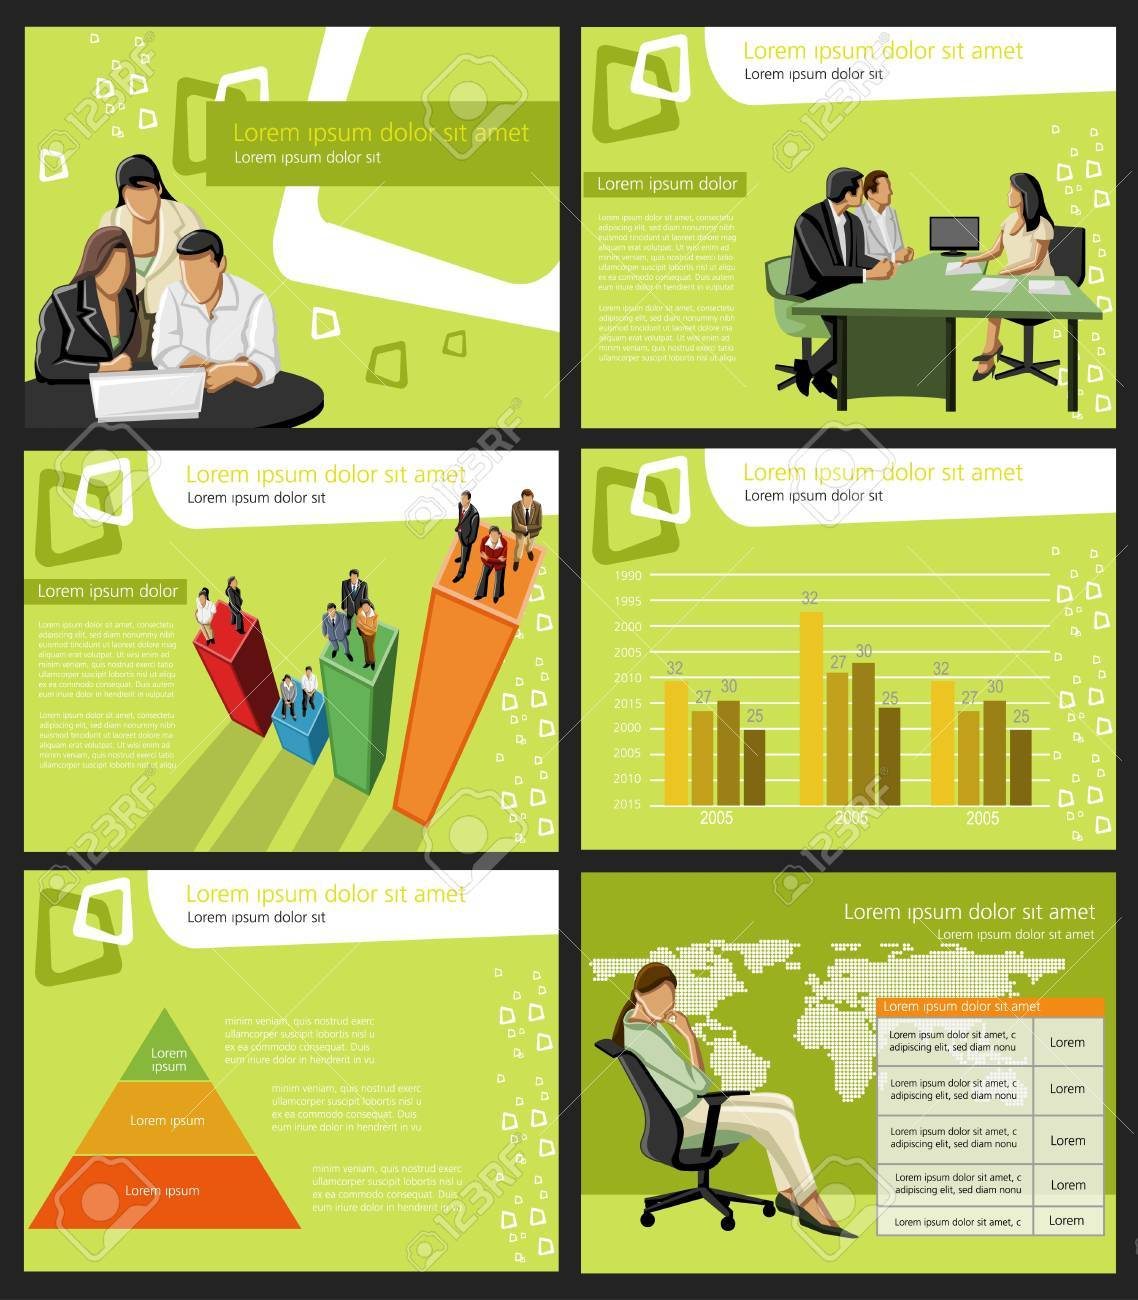 Template for advertising brochure with business people Stock Vector - 18933808